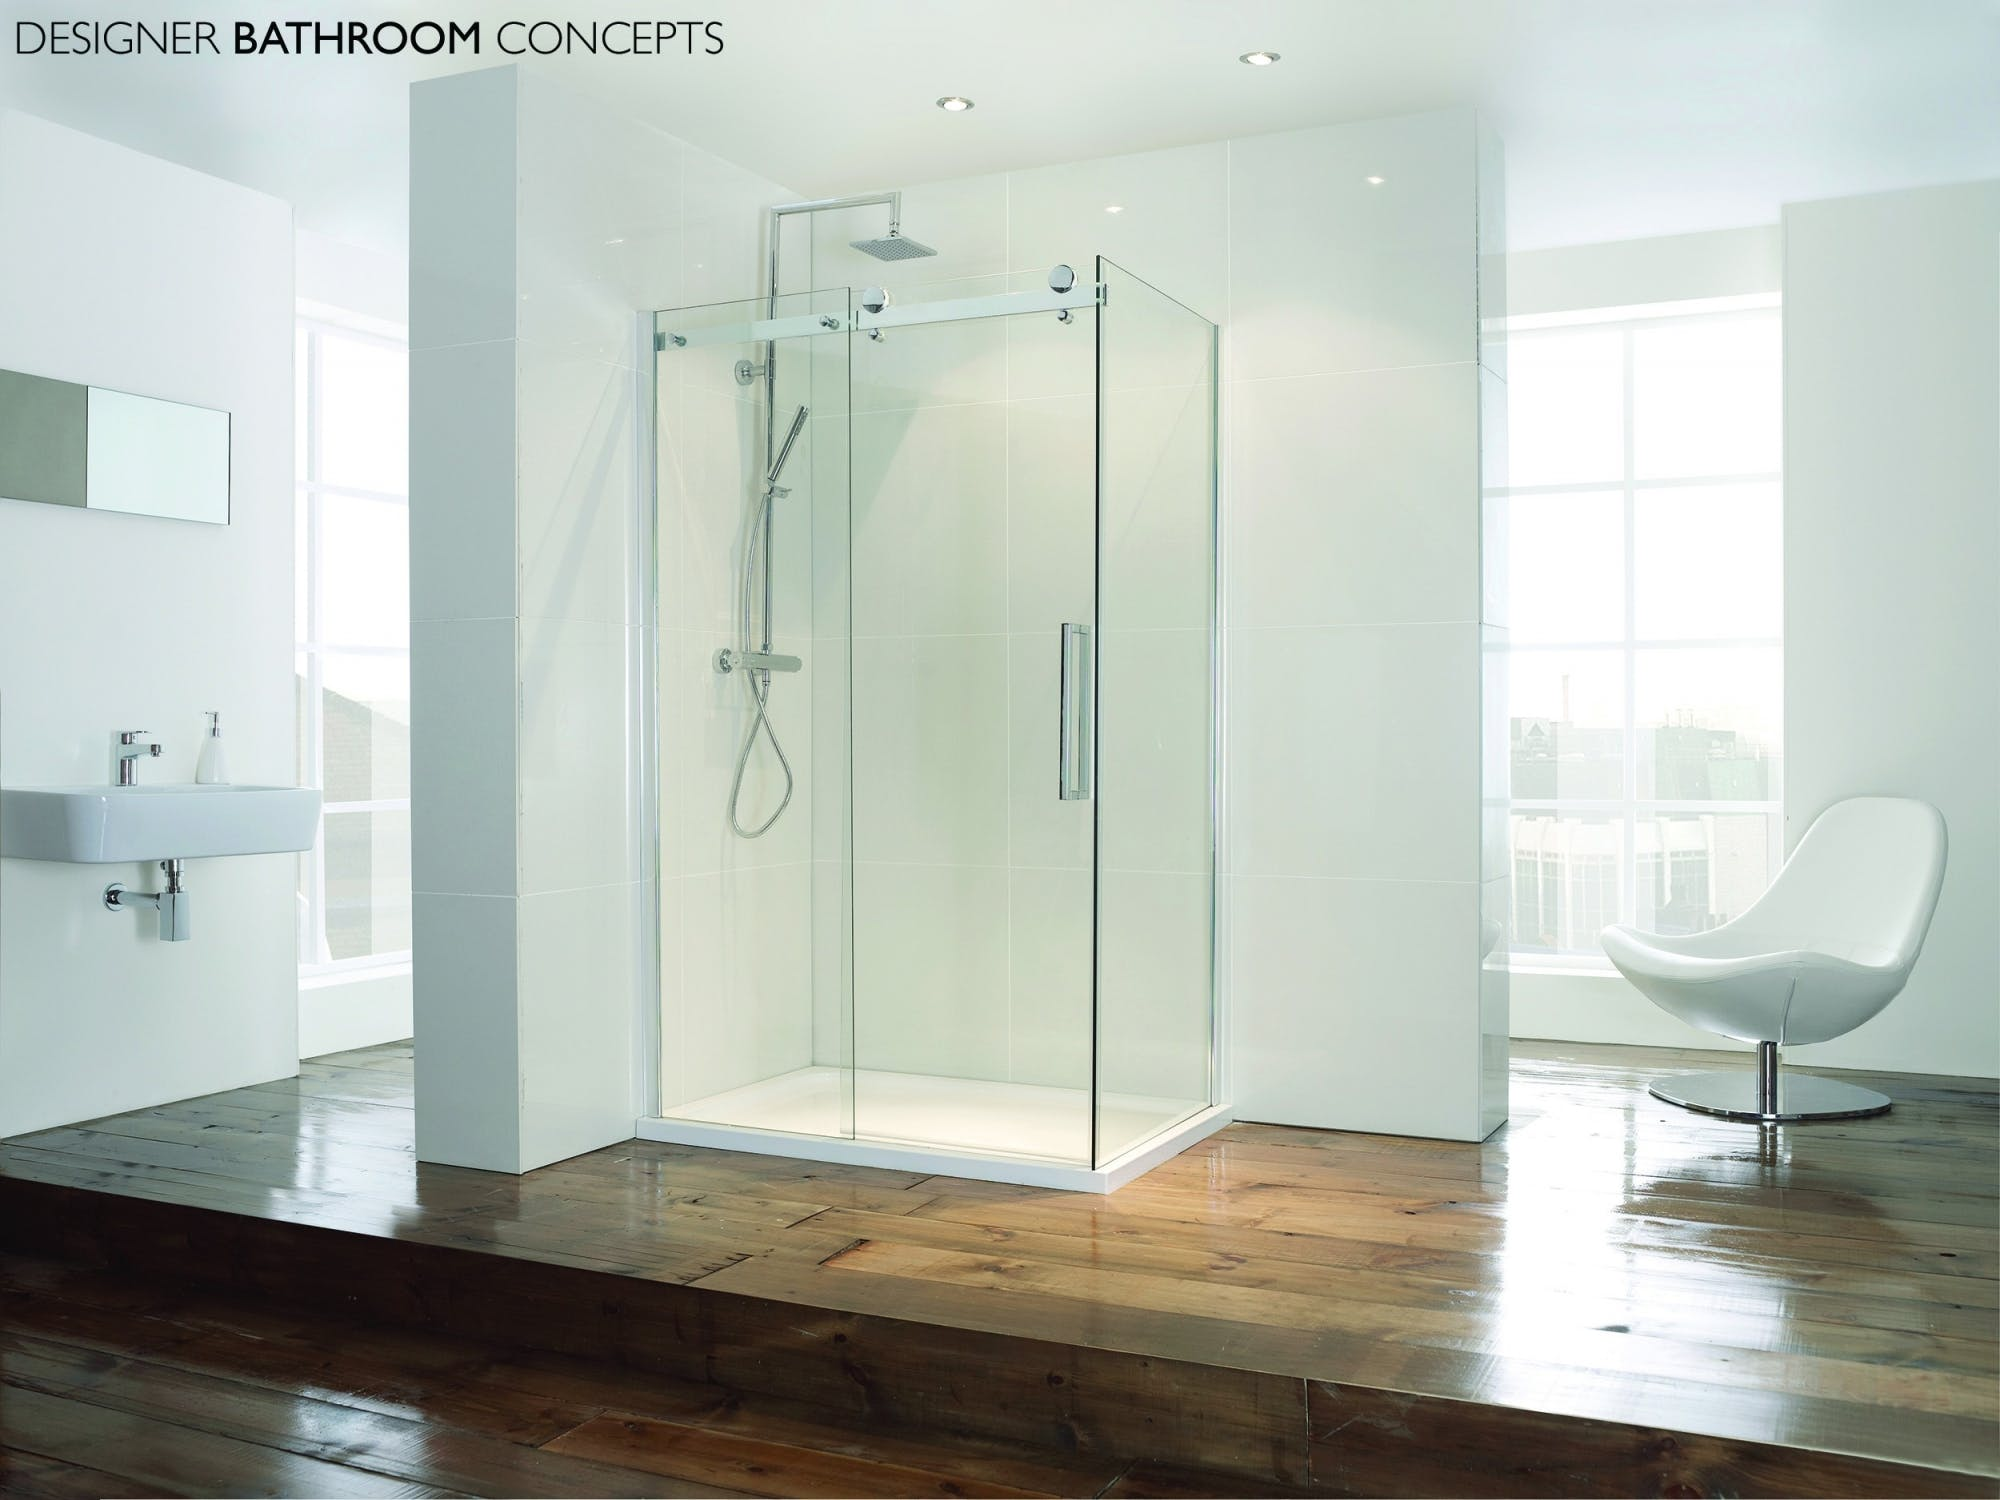 Help Advice Styles Shapes Sizes The Limitless Options For Shower Enclosures Cubicles